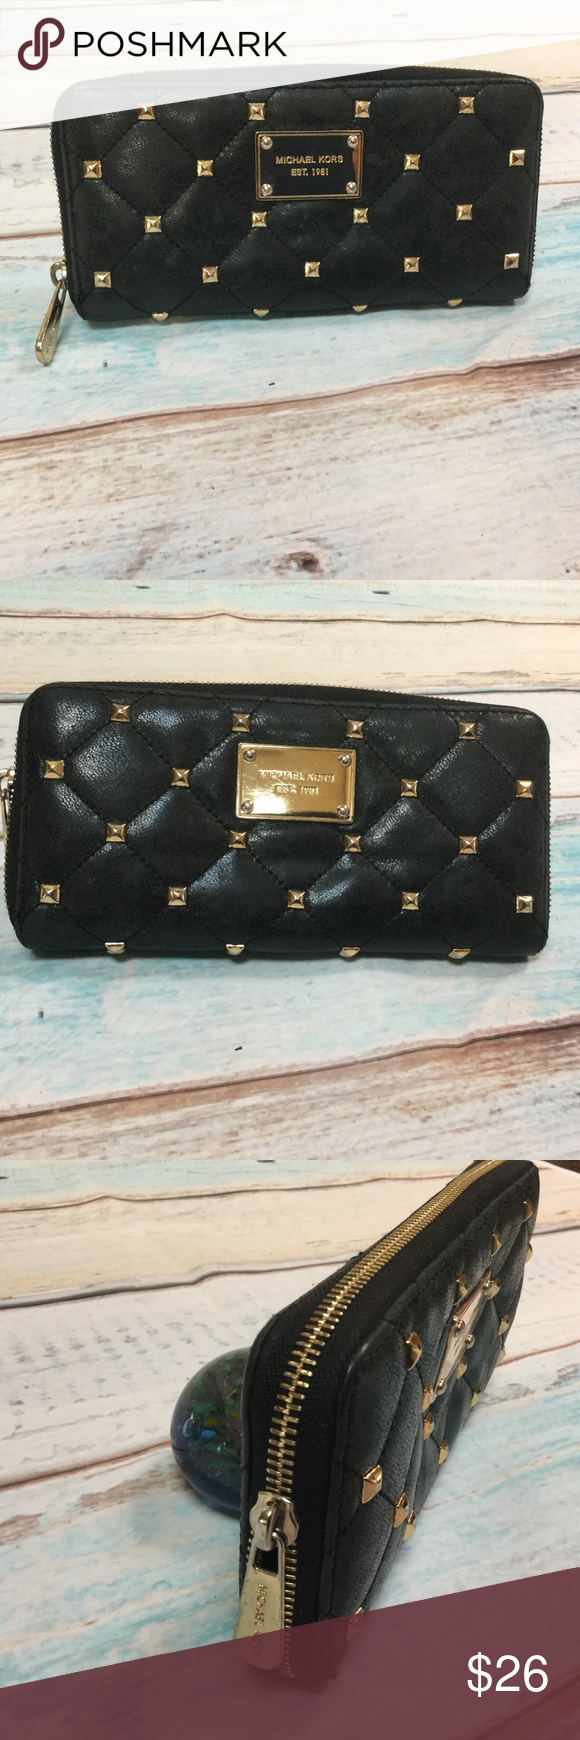 d8447fddcfbb ... australia michael kors studded wallet this mk wallet is prelove in good  conditions some discoloration not